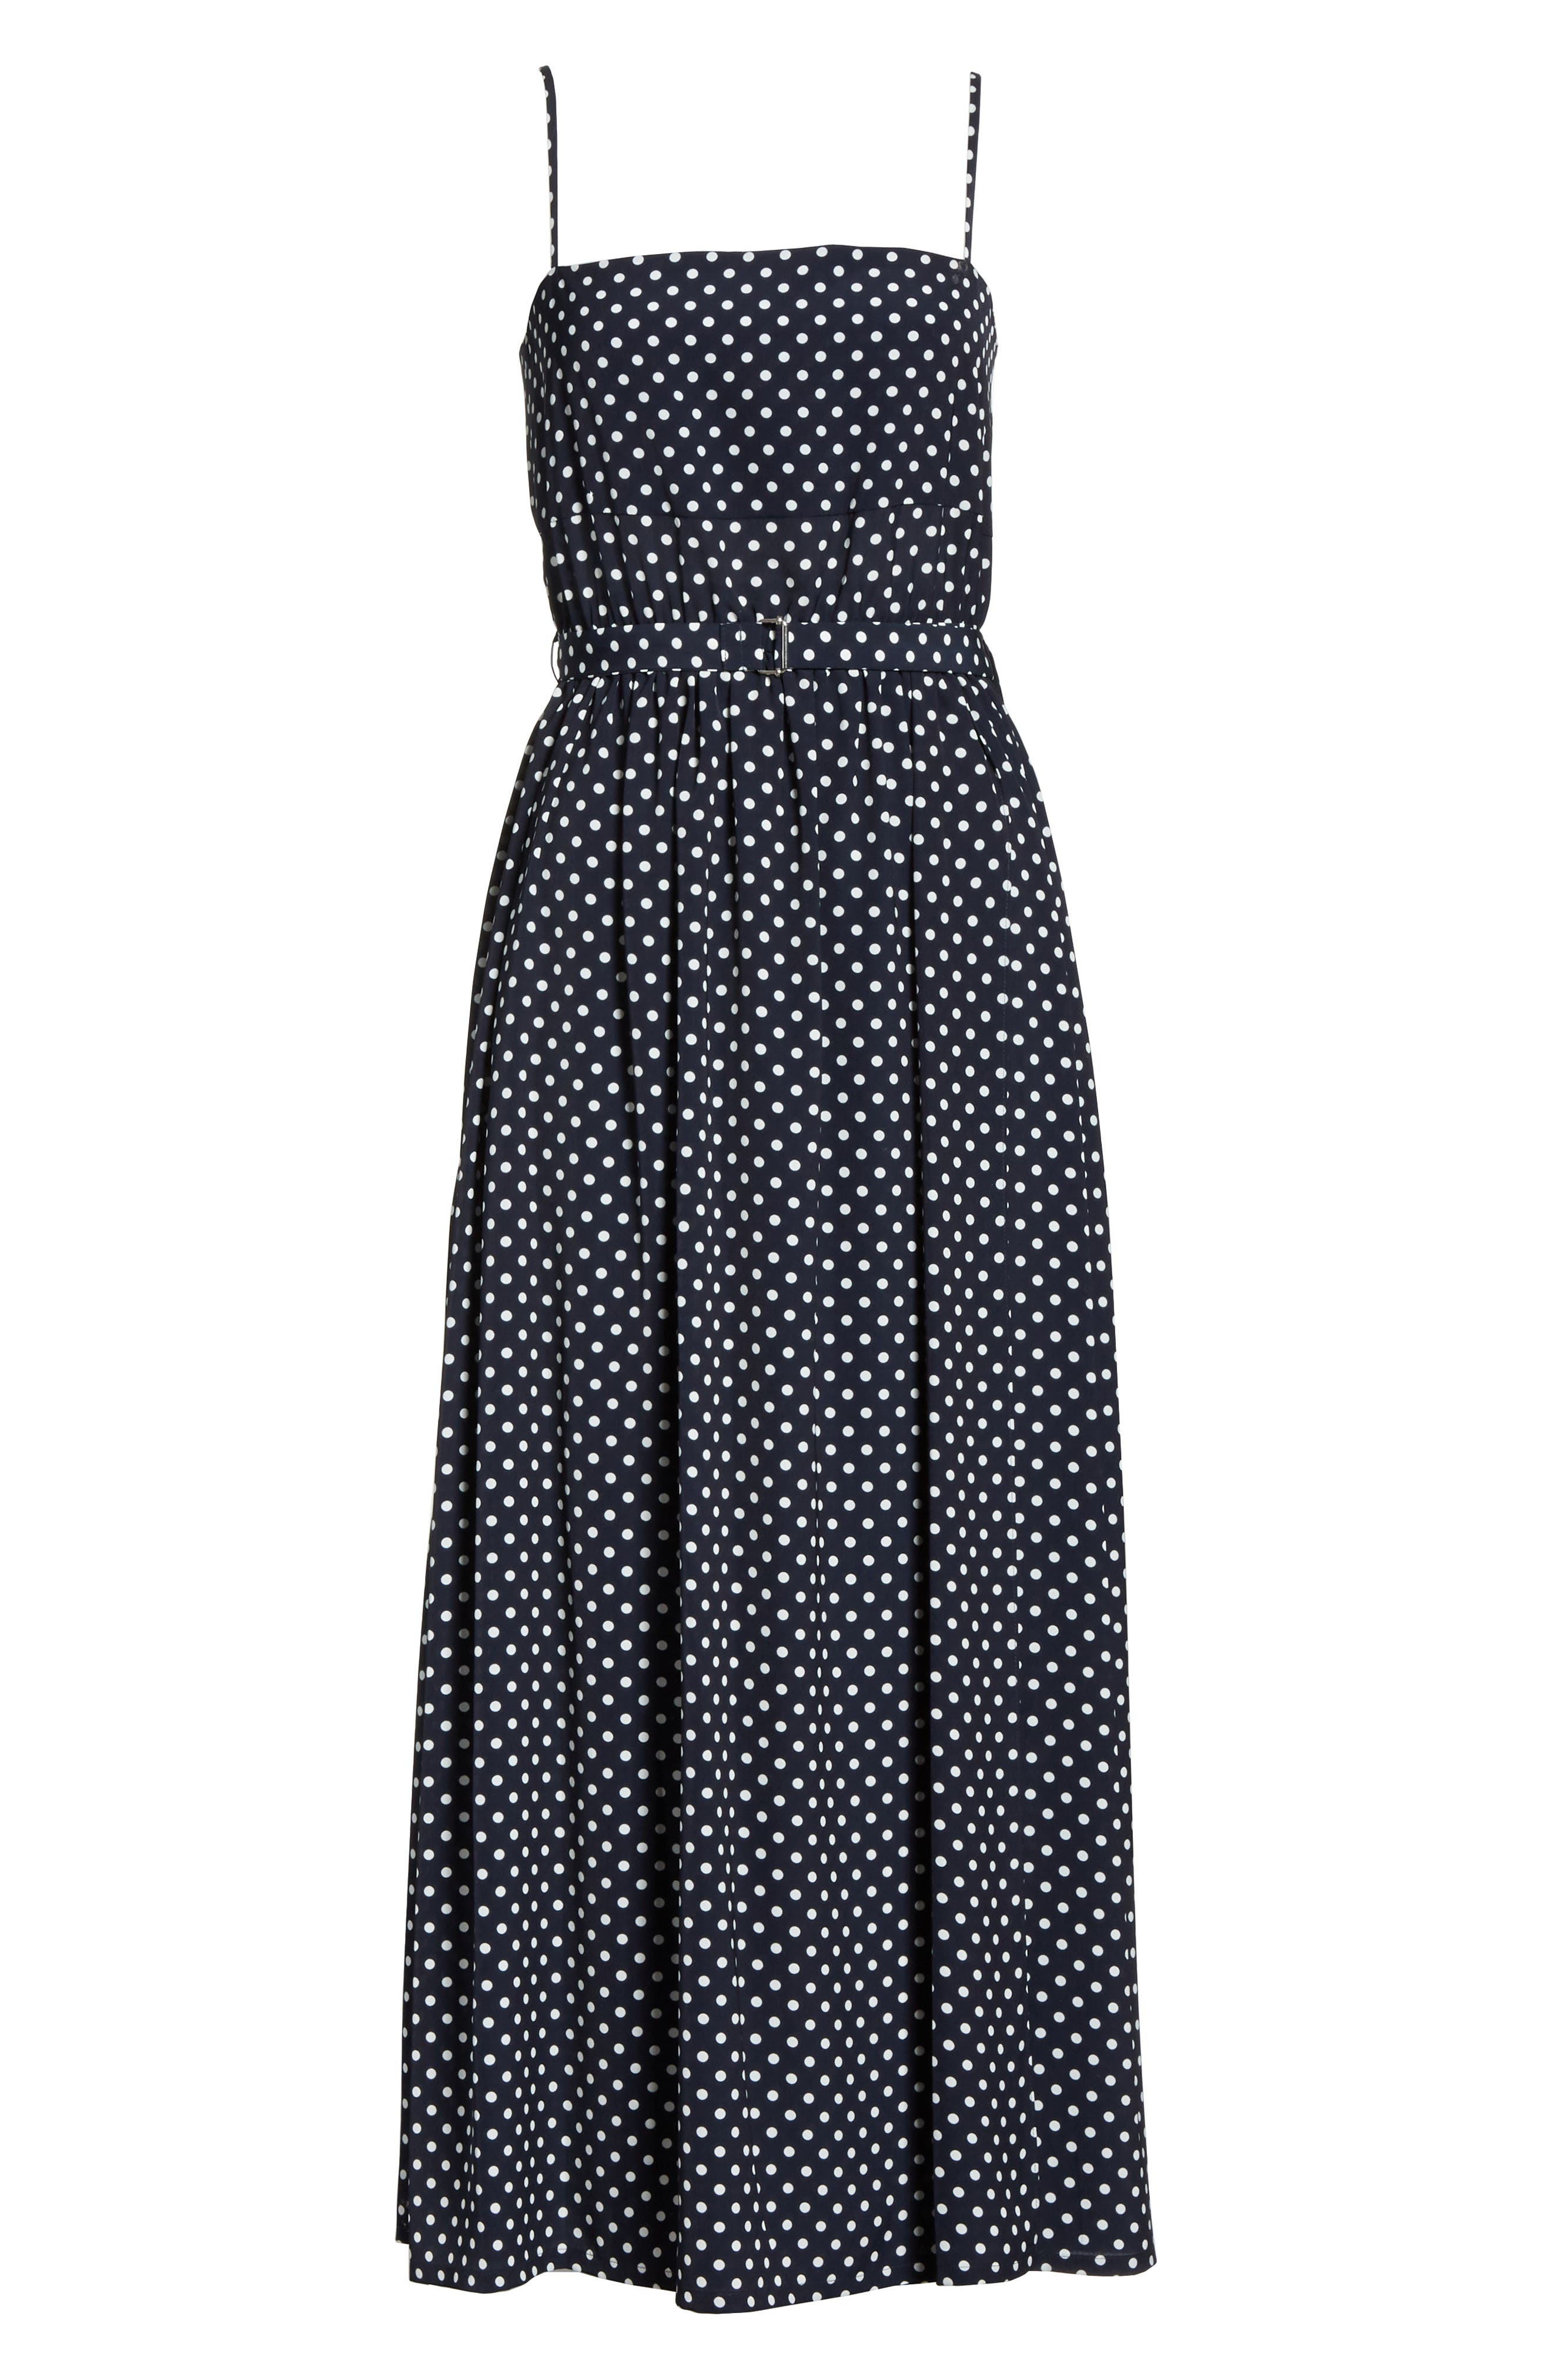 Polka Dot Midi Dress,                             Alternate thumbnail 6, color,                             410